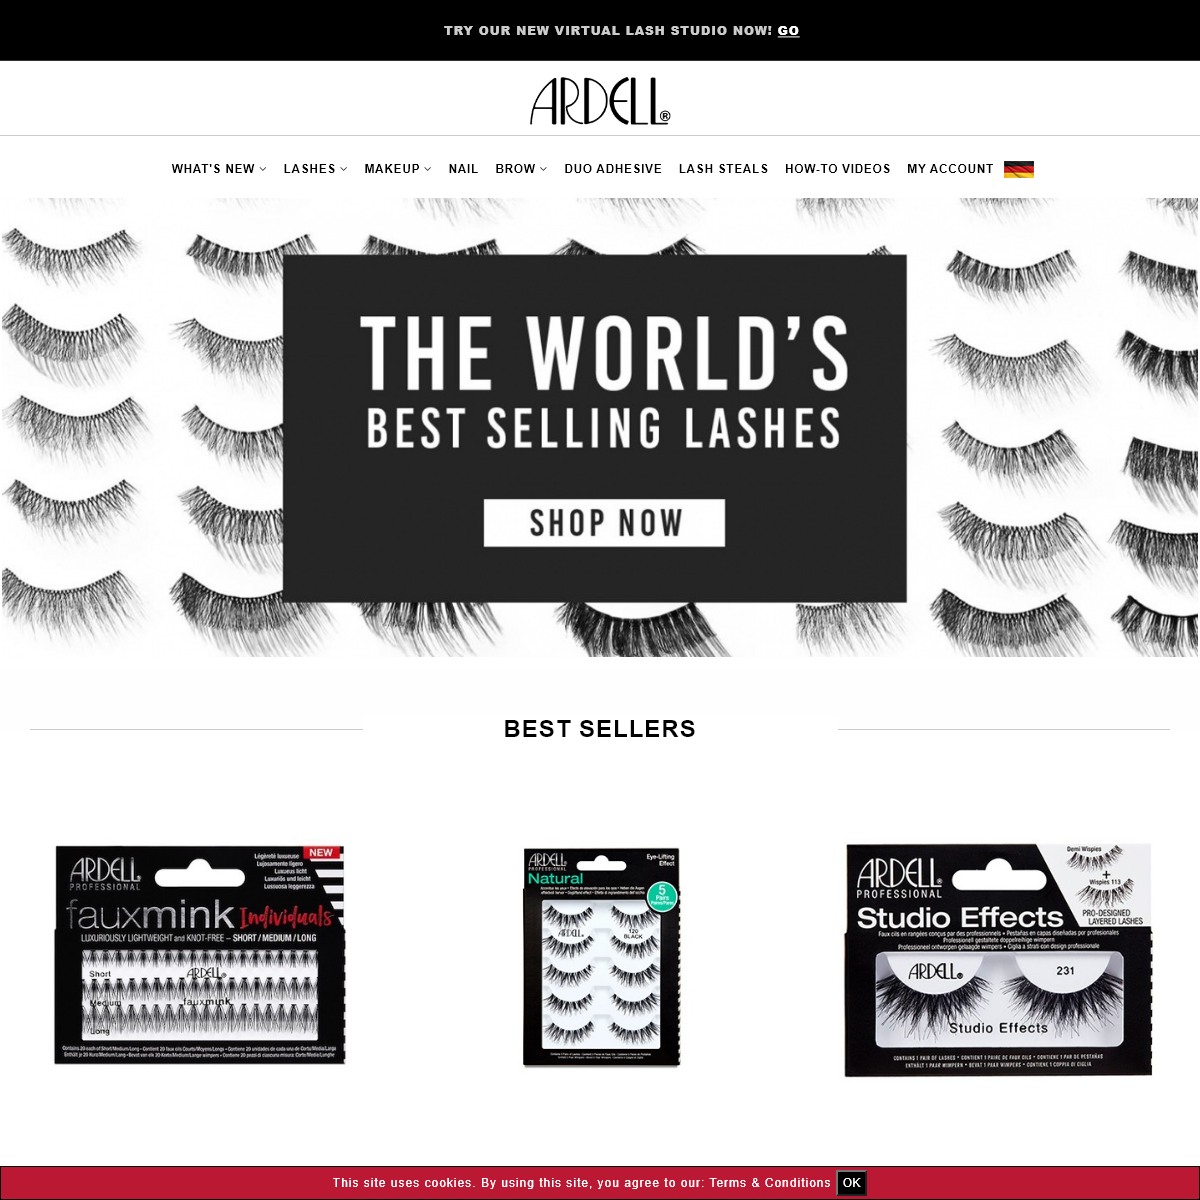 Ardell Lashes - Home